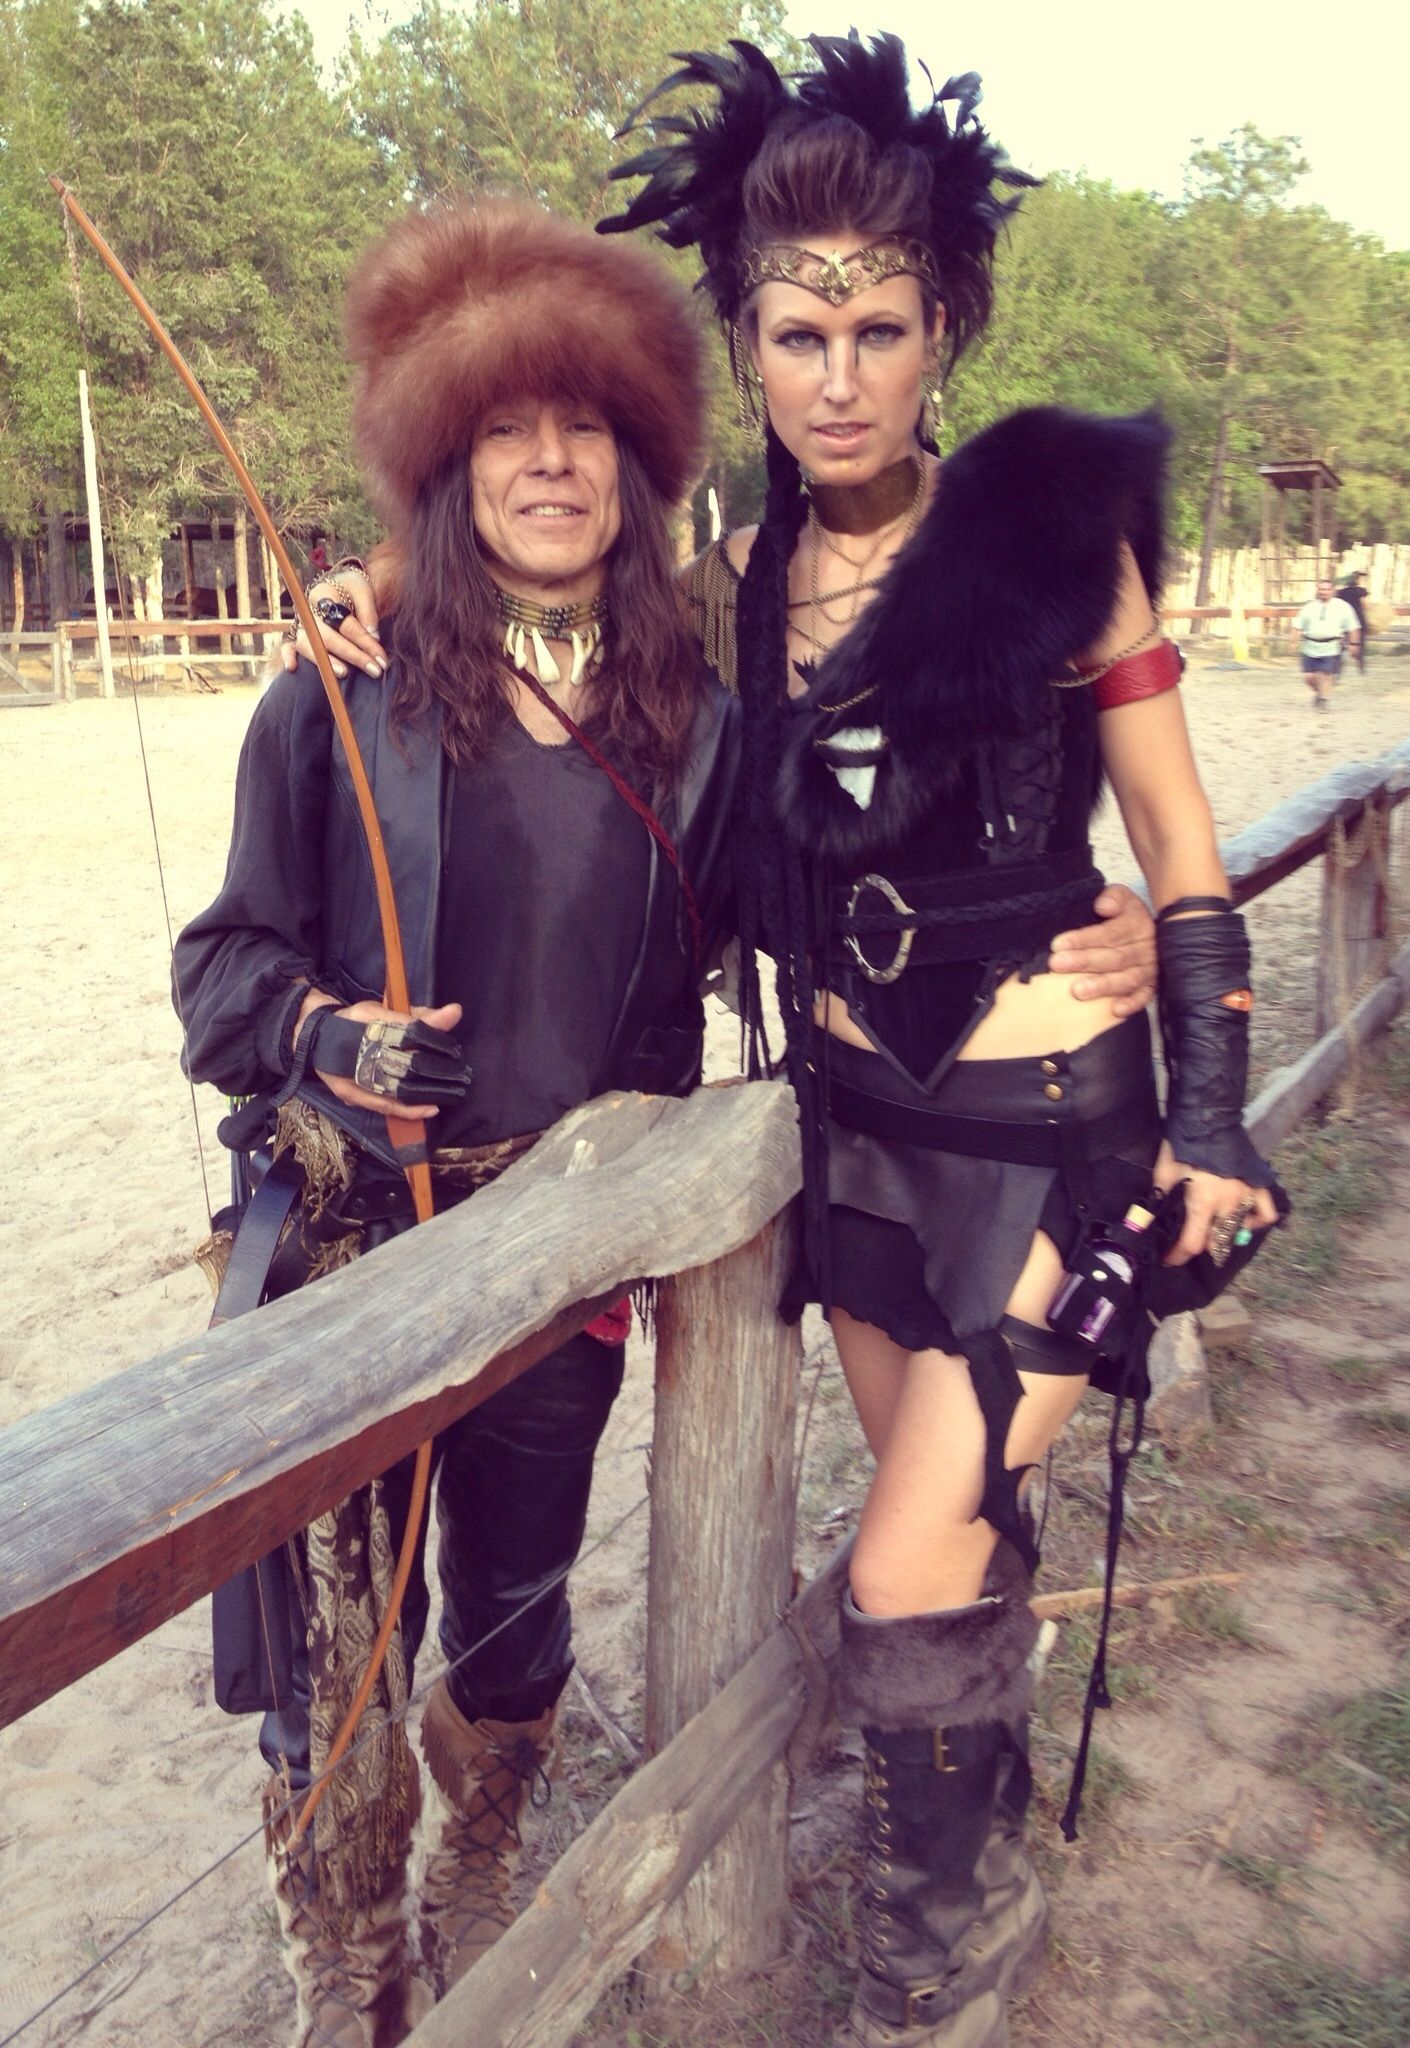 Sherwood Forest Faire, Texas Renaissance Festival, Renaissance Festival, Medieval, Warrior Princess, Queen, Armor, Metal, Jewels, Makeup, Leather, Feathers, Fur, Period Costume Creations by HexHeartHollow